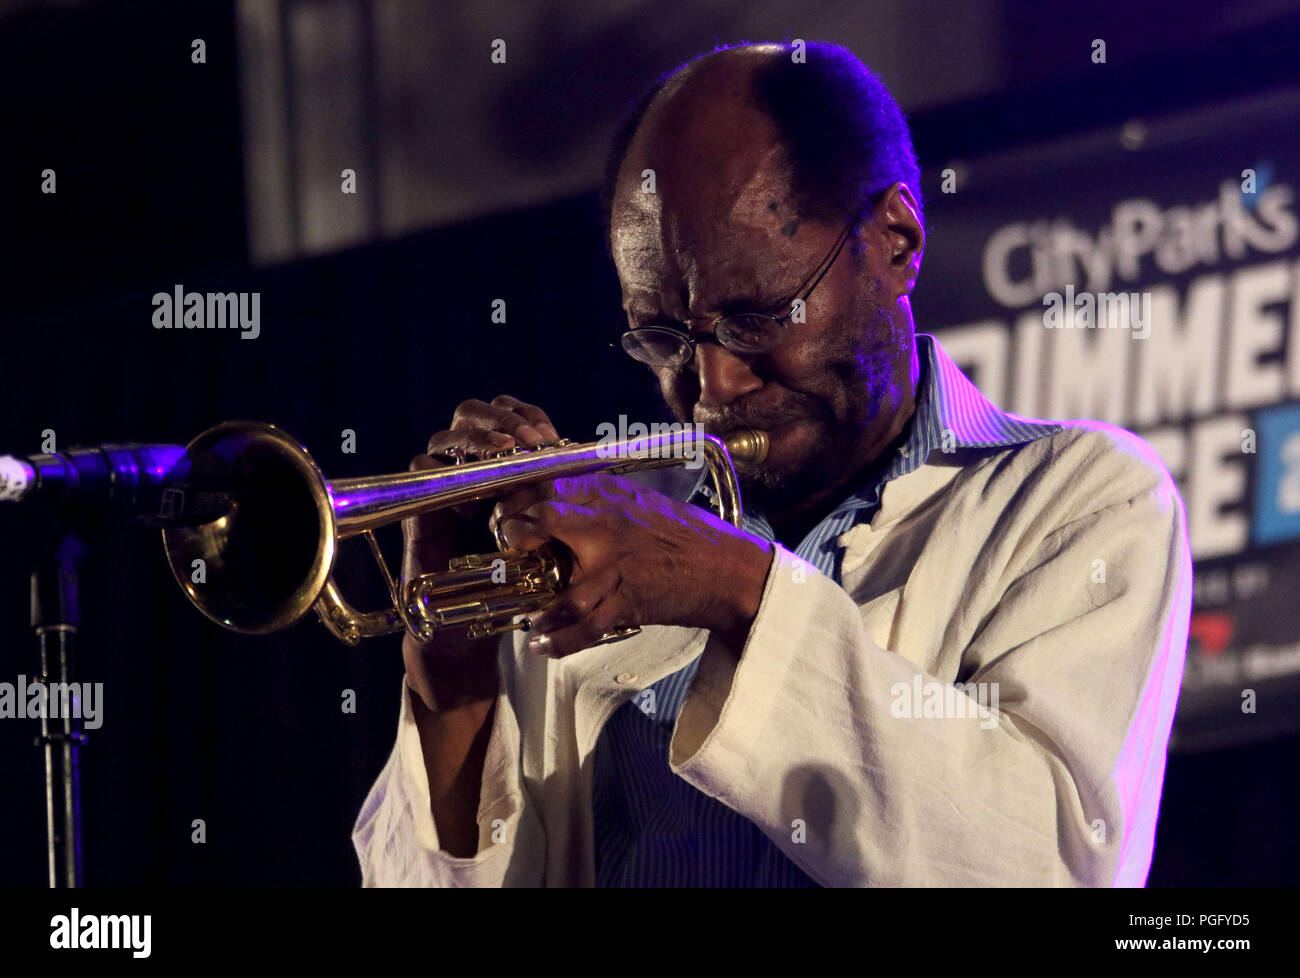 New York City New York Usa 24th Aug 2018 Jazz Trumpet Player Charles Tolliver Performs During The two playgrounds are built for all. alamy